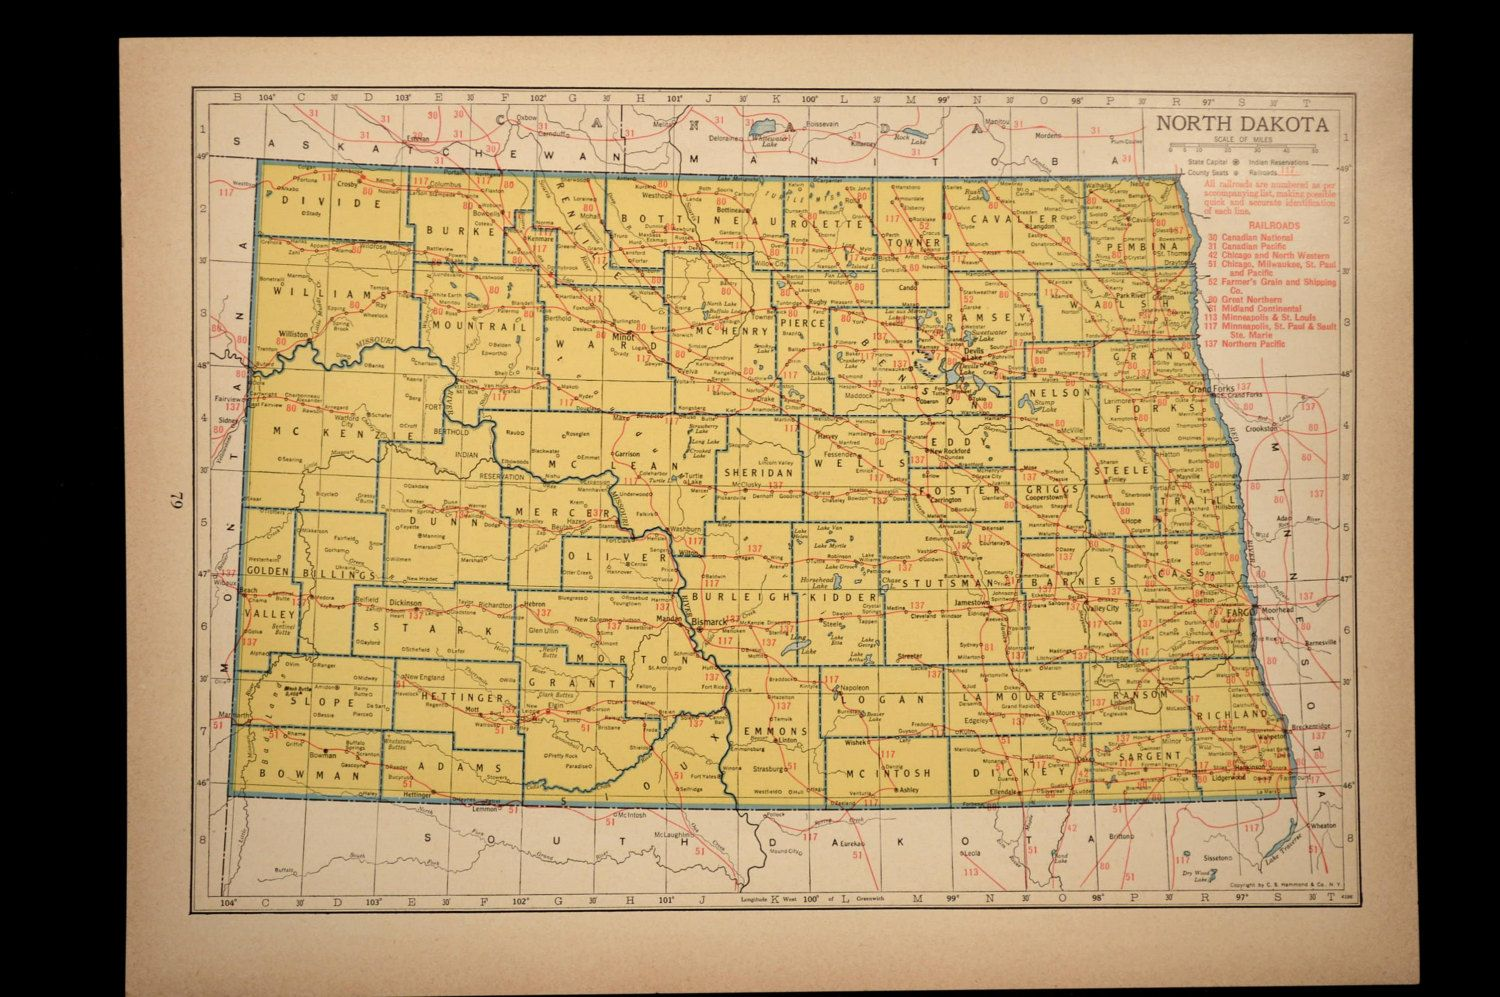 North Dakota Map of North Dakota Wall Decor Art Railroad ... on print map of states, print map of ontario canada, print map of oklahoma city, print map of st. augustine, print map of philadelphia, print map of houston,